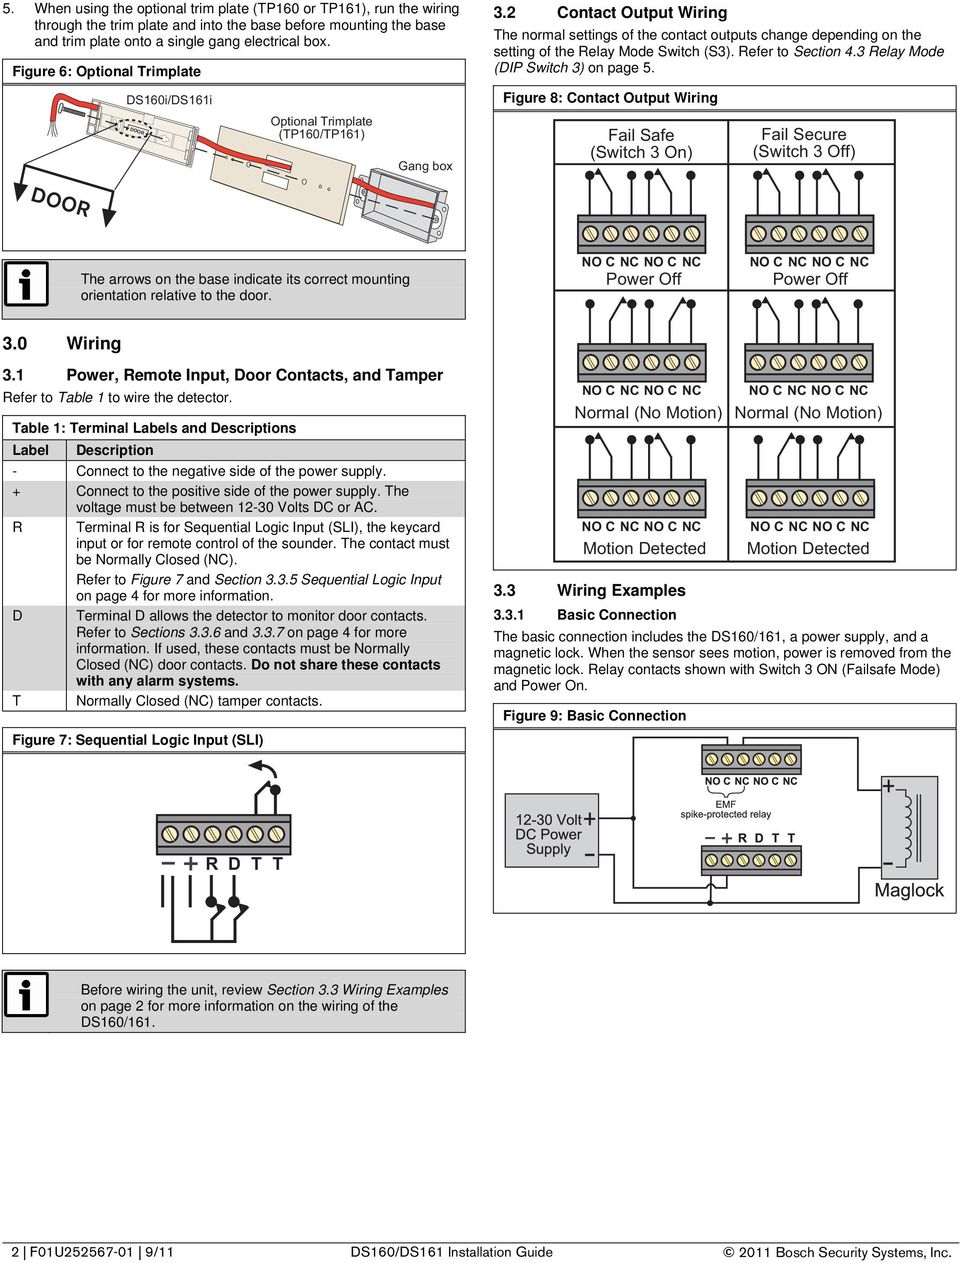 medium resolution of 2 contact output wiring the normal settings of the contact outputs change depending on the setting